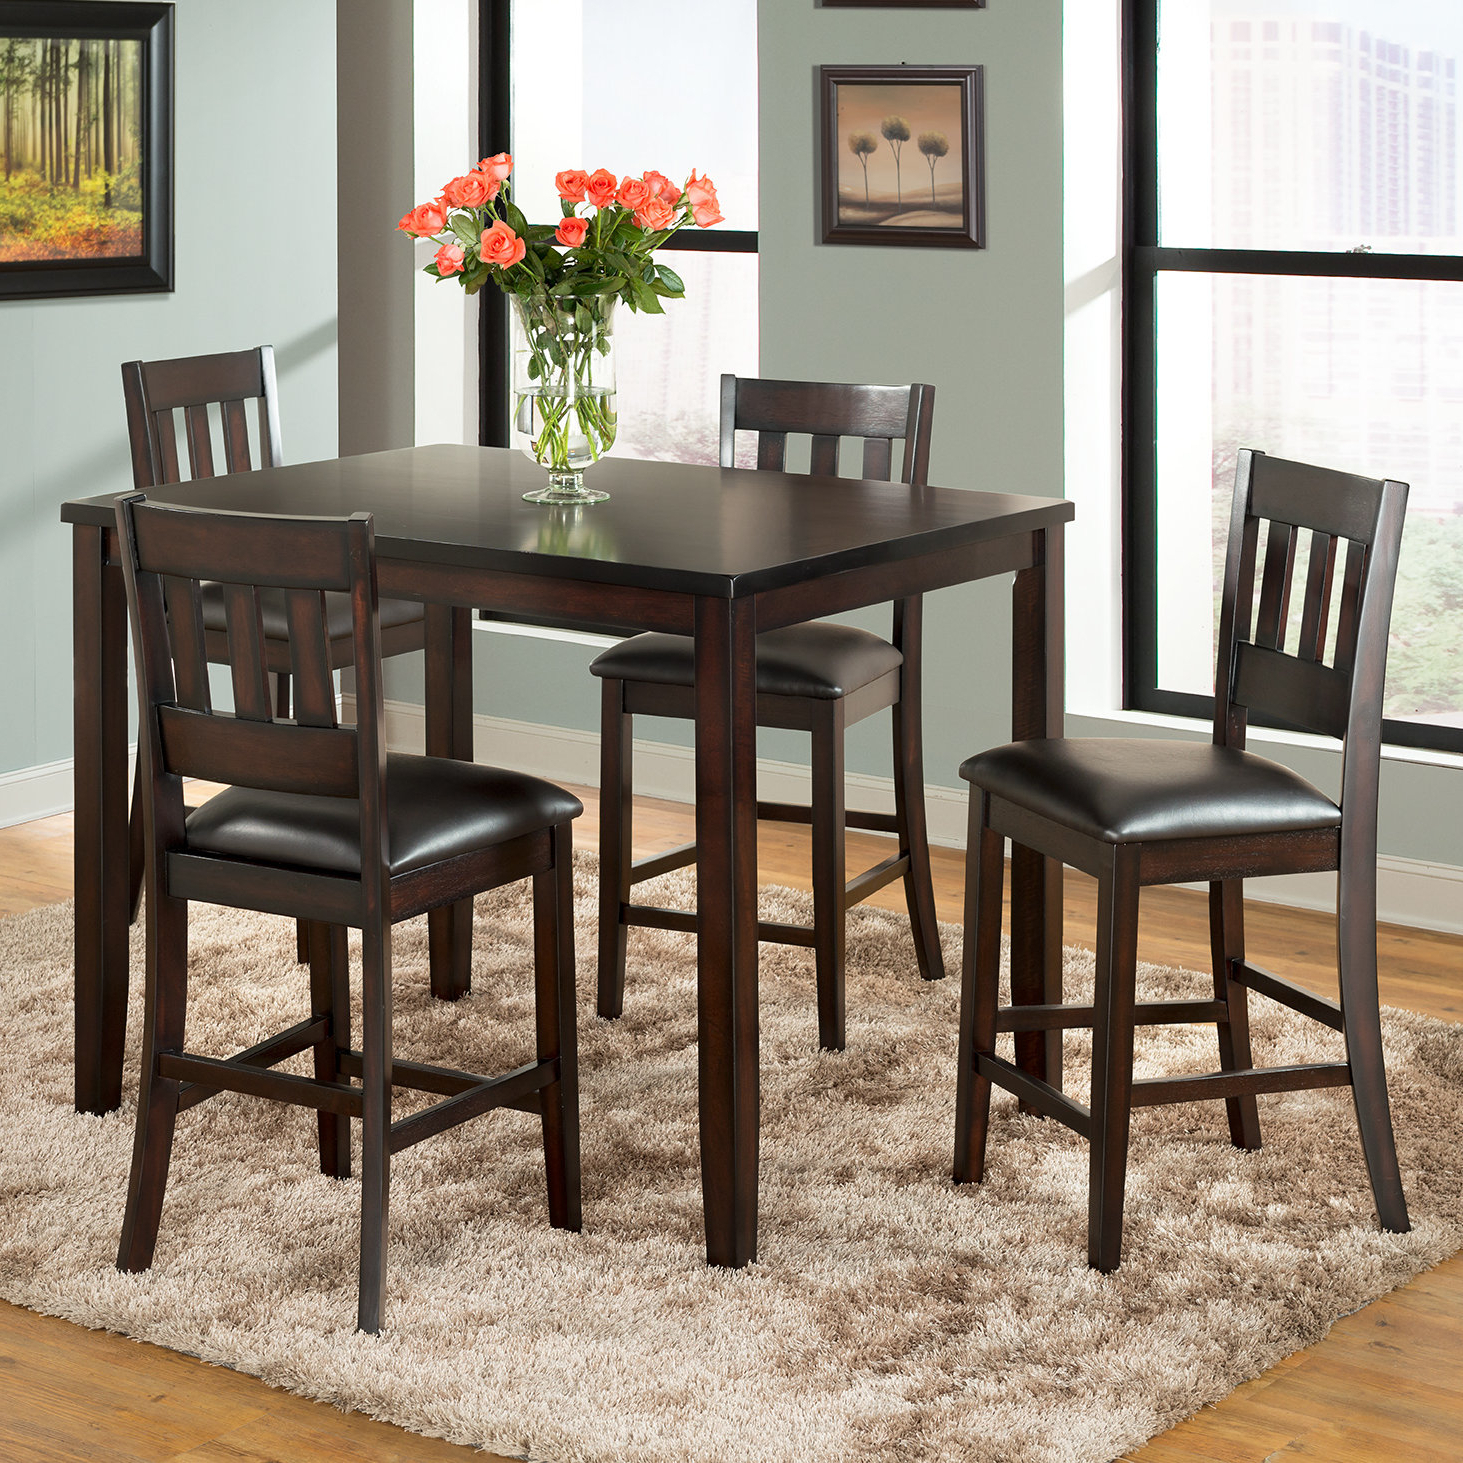 Most Popular Americano 5 Piece Pub Table Set In Presson 3 Piece Counter Height Dining Sets (View 2 of 20)